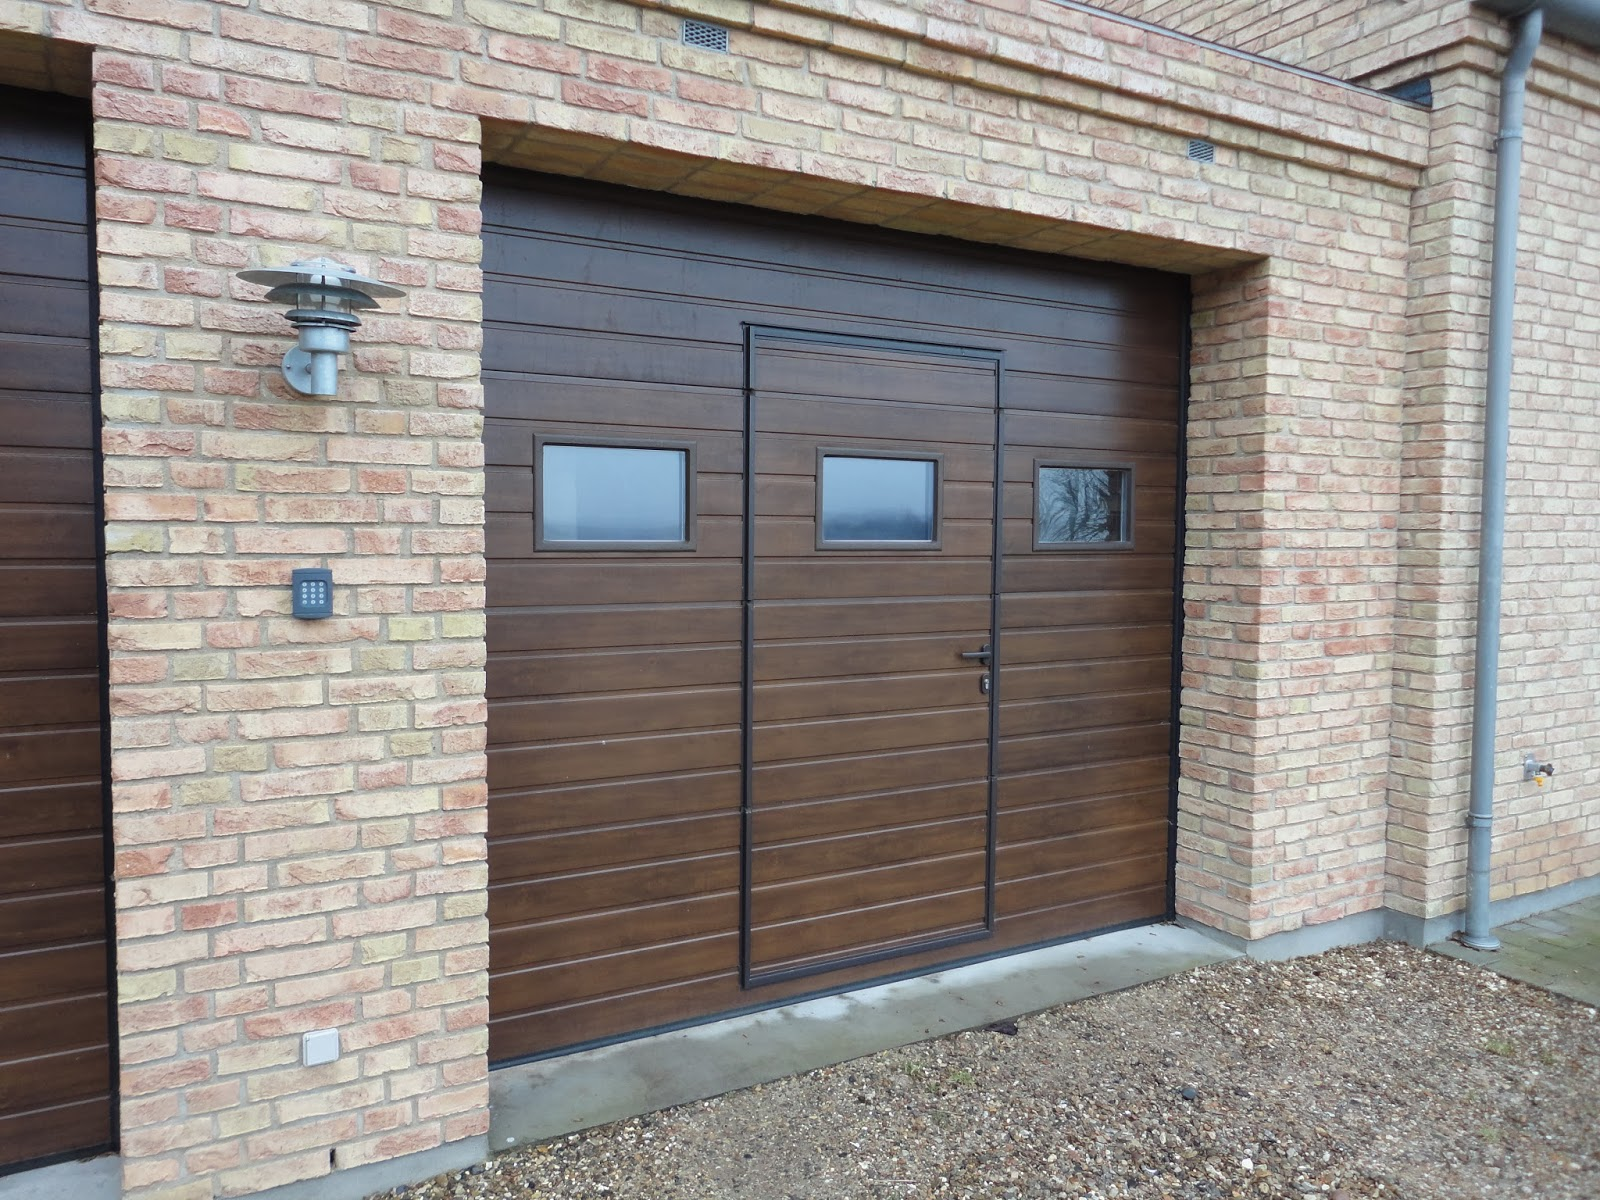 The door industry journal say yes to no heat losses and enough wicket doors with low thresholds and aesthetic narrow profiles can minimize sectional door open and close cycles thus increasing door performance rubansaba